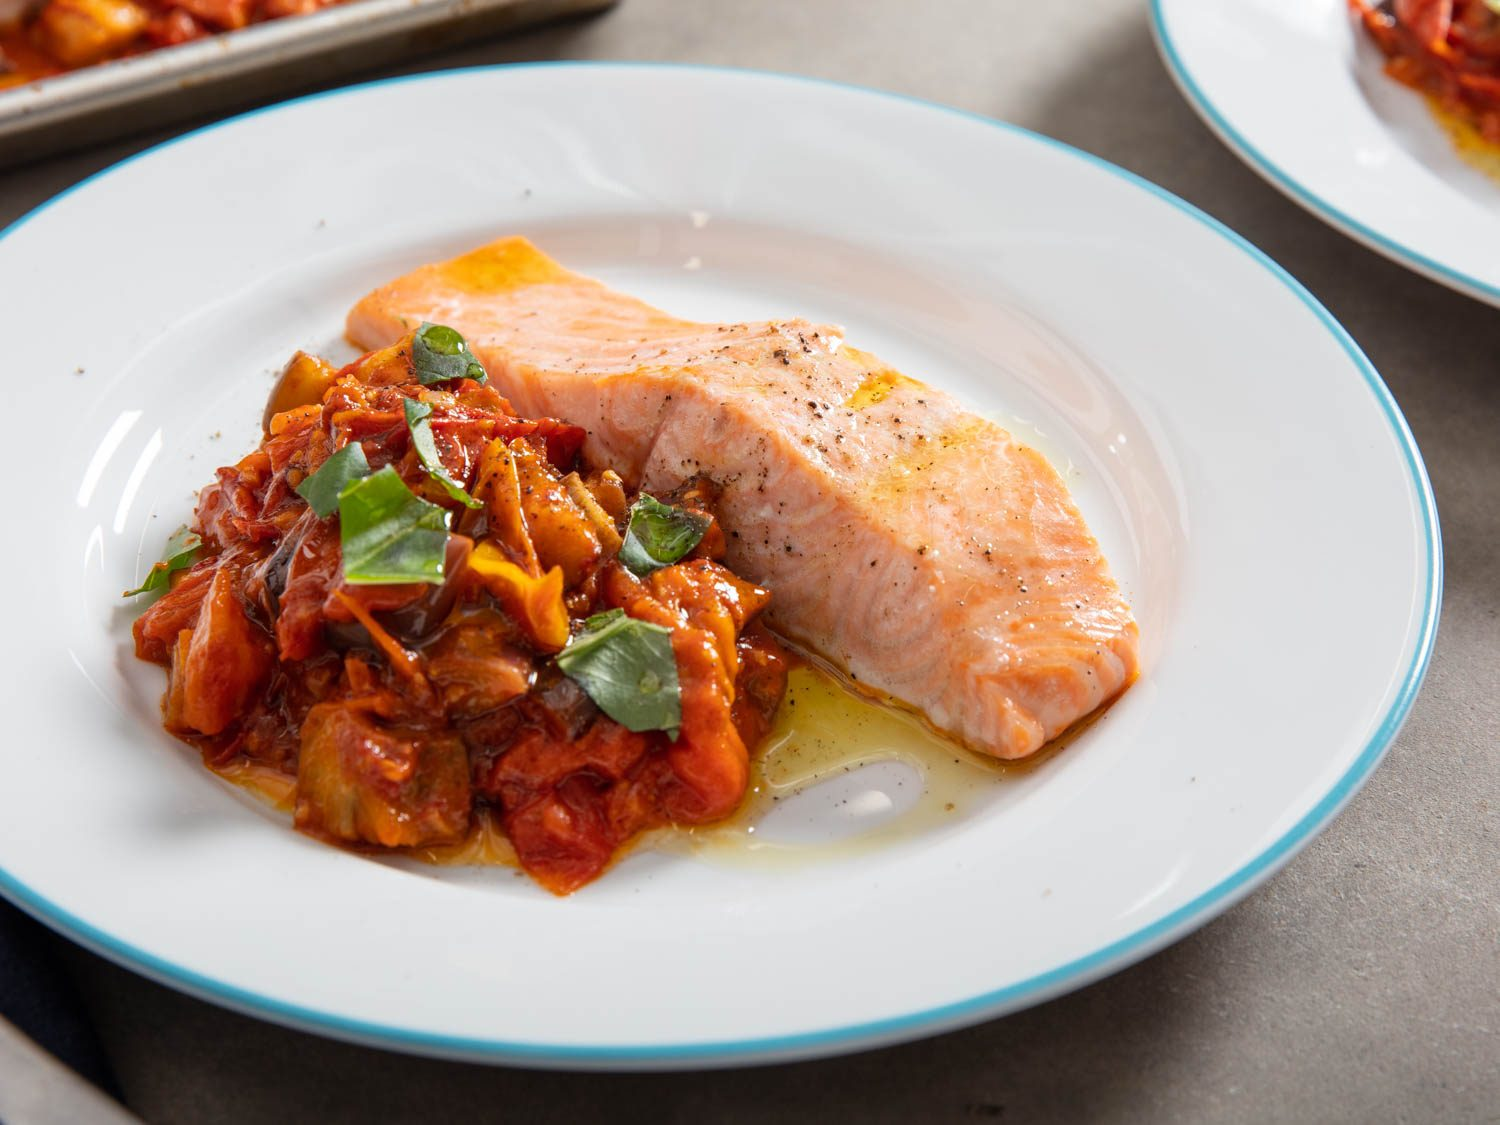 Sheet-Pan Salmon With Tomato-Eggplant Compote